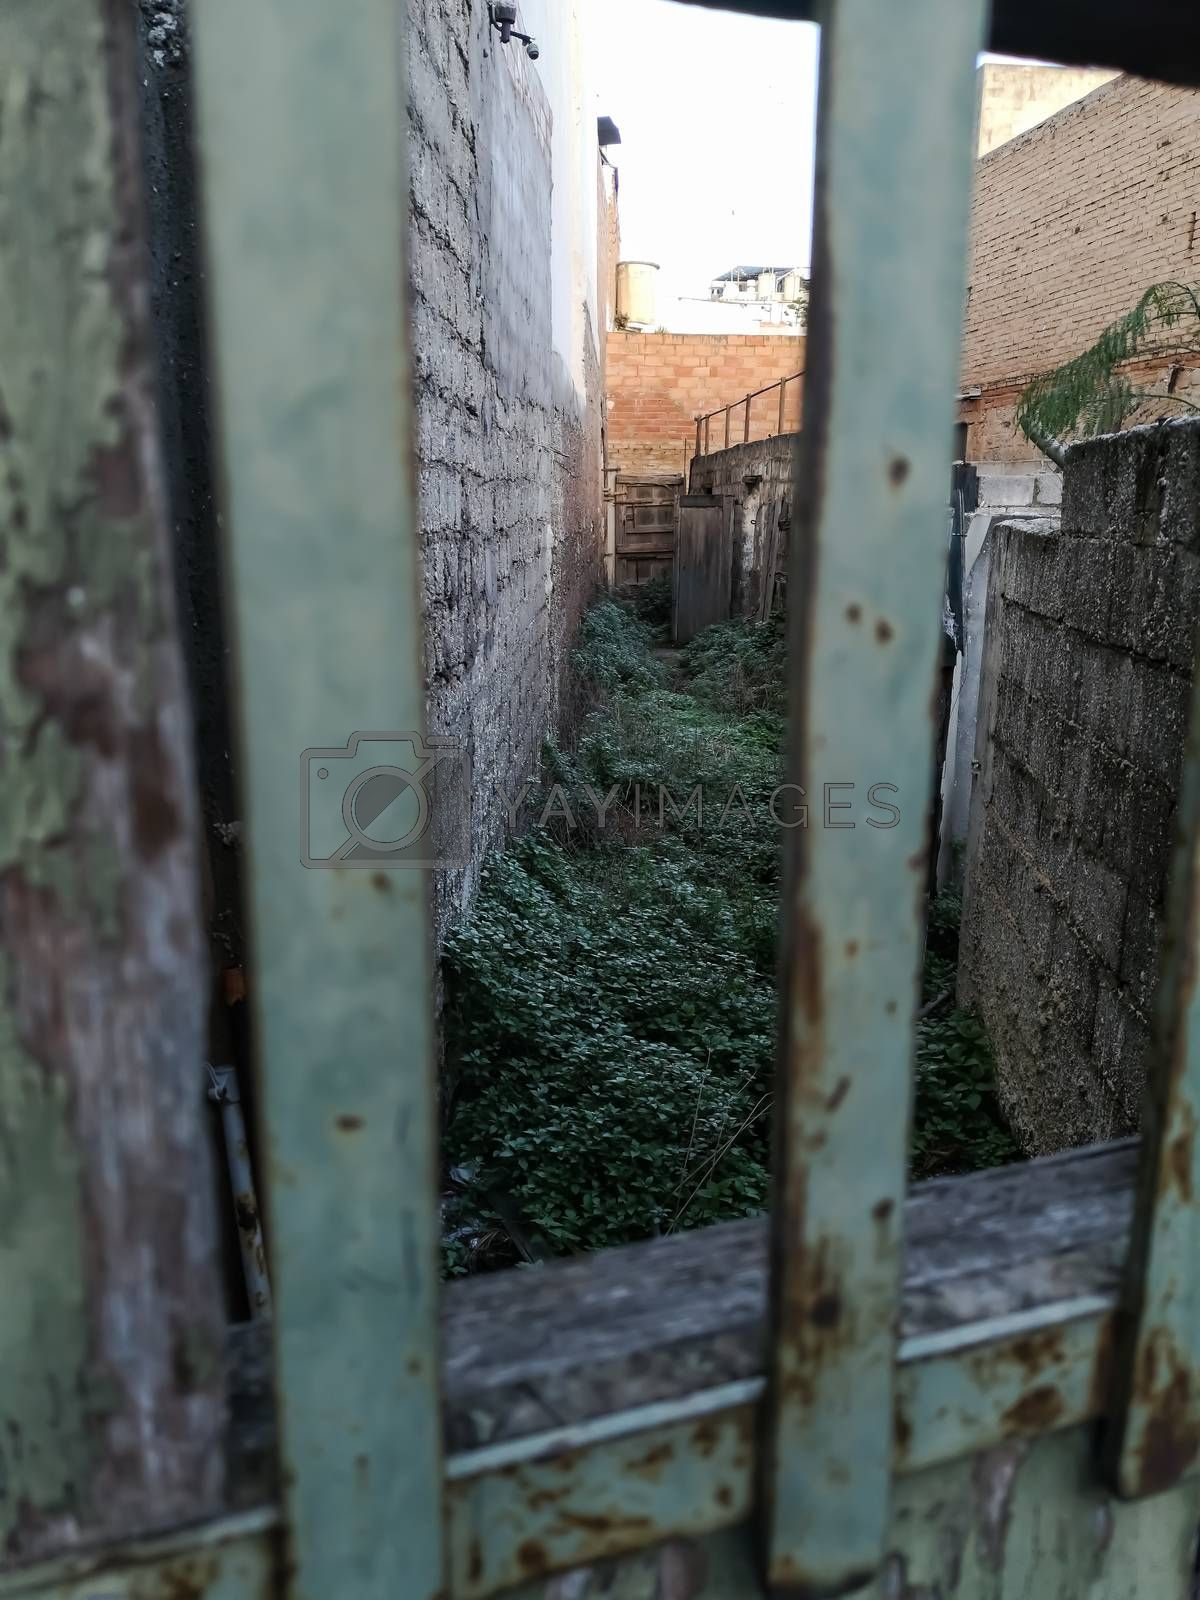 Alley hidden behind a door with a window with gates